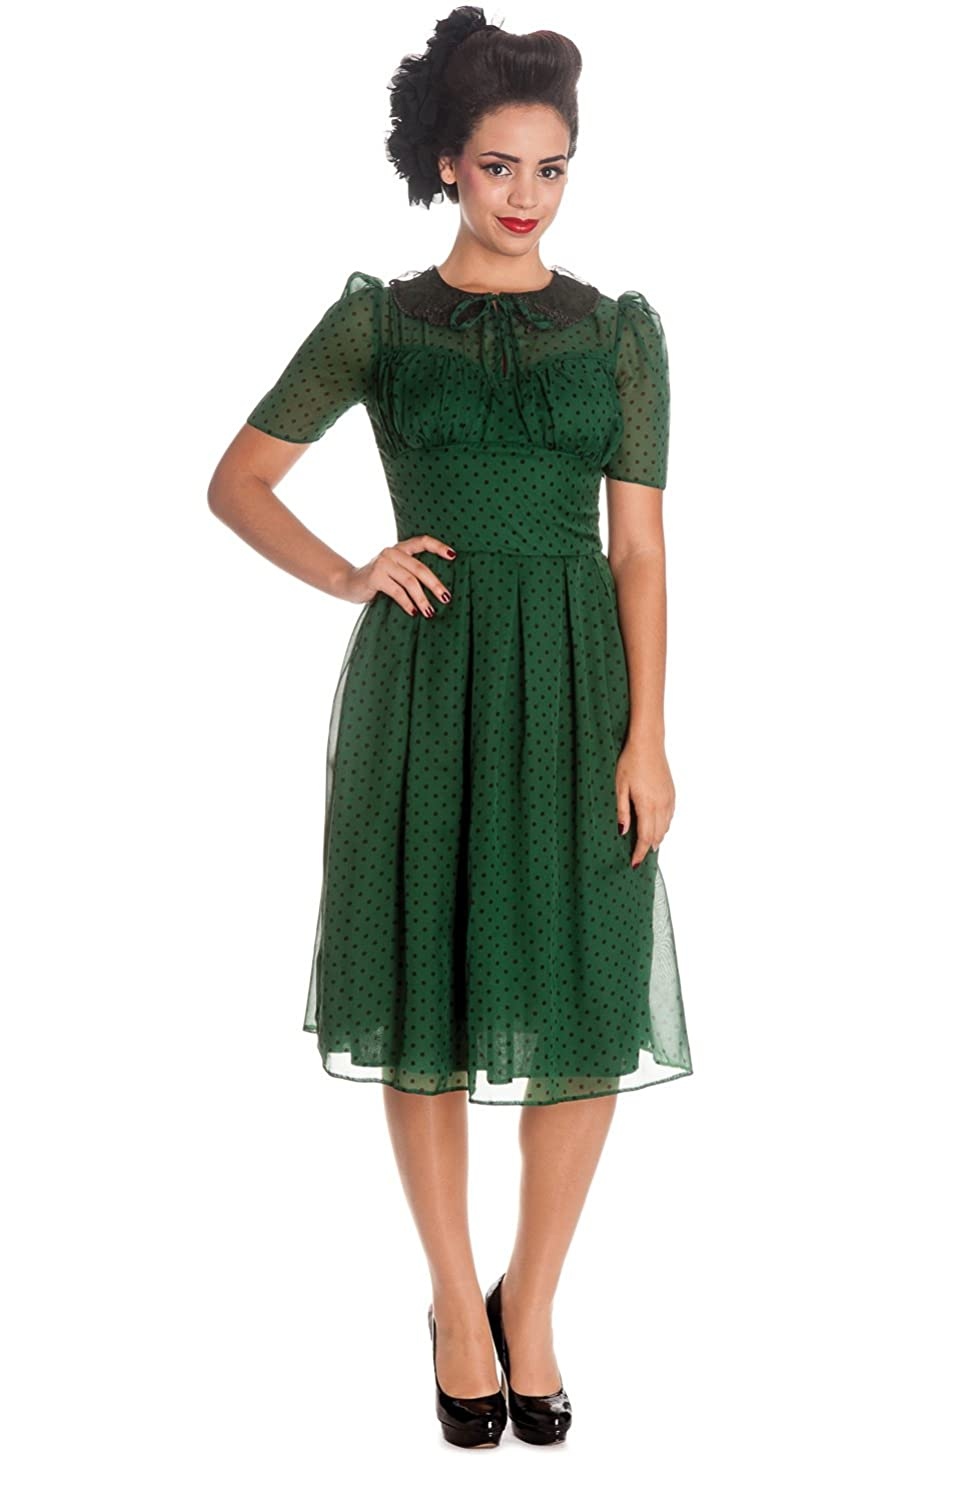 Vintage Tea Dresses, Floral Tea Dresses, Tea Length Dresses Small- Hell Bunny Womens 40s 50s Vintage Cynthia Polka Dot Chiffon Dress $69.00 AT vintagedancer.com